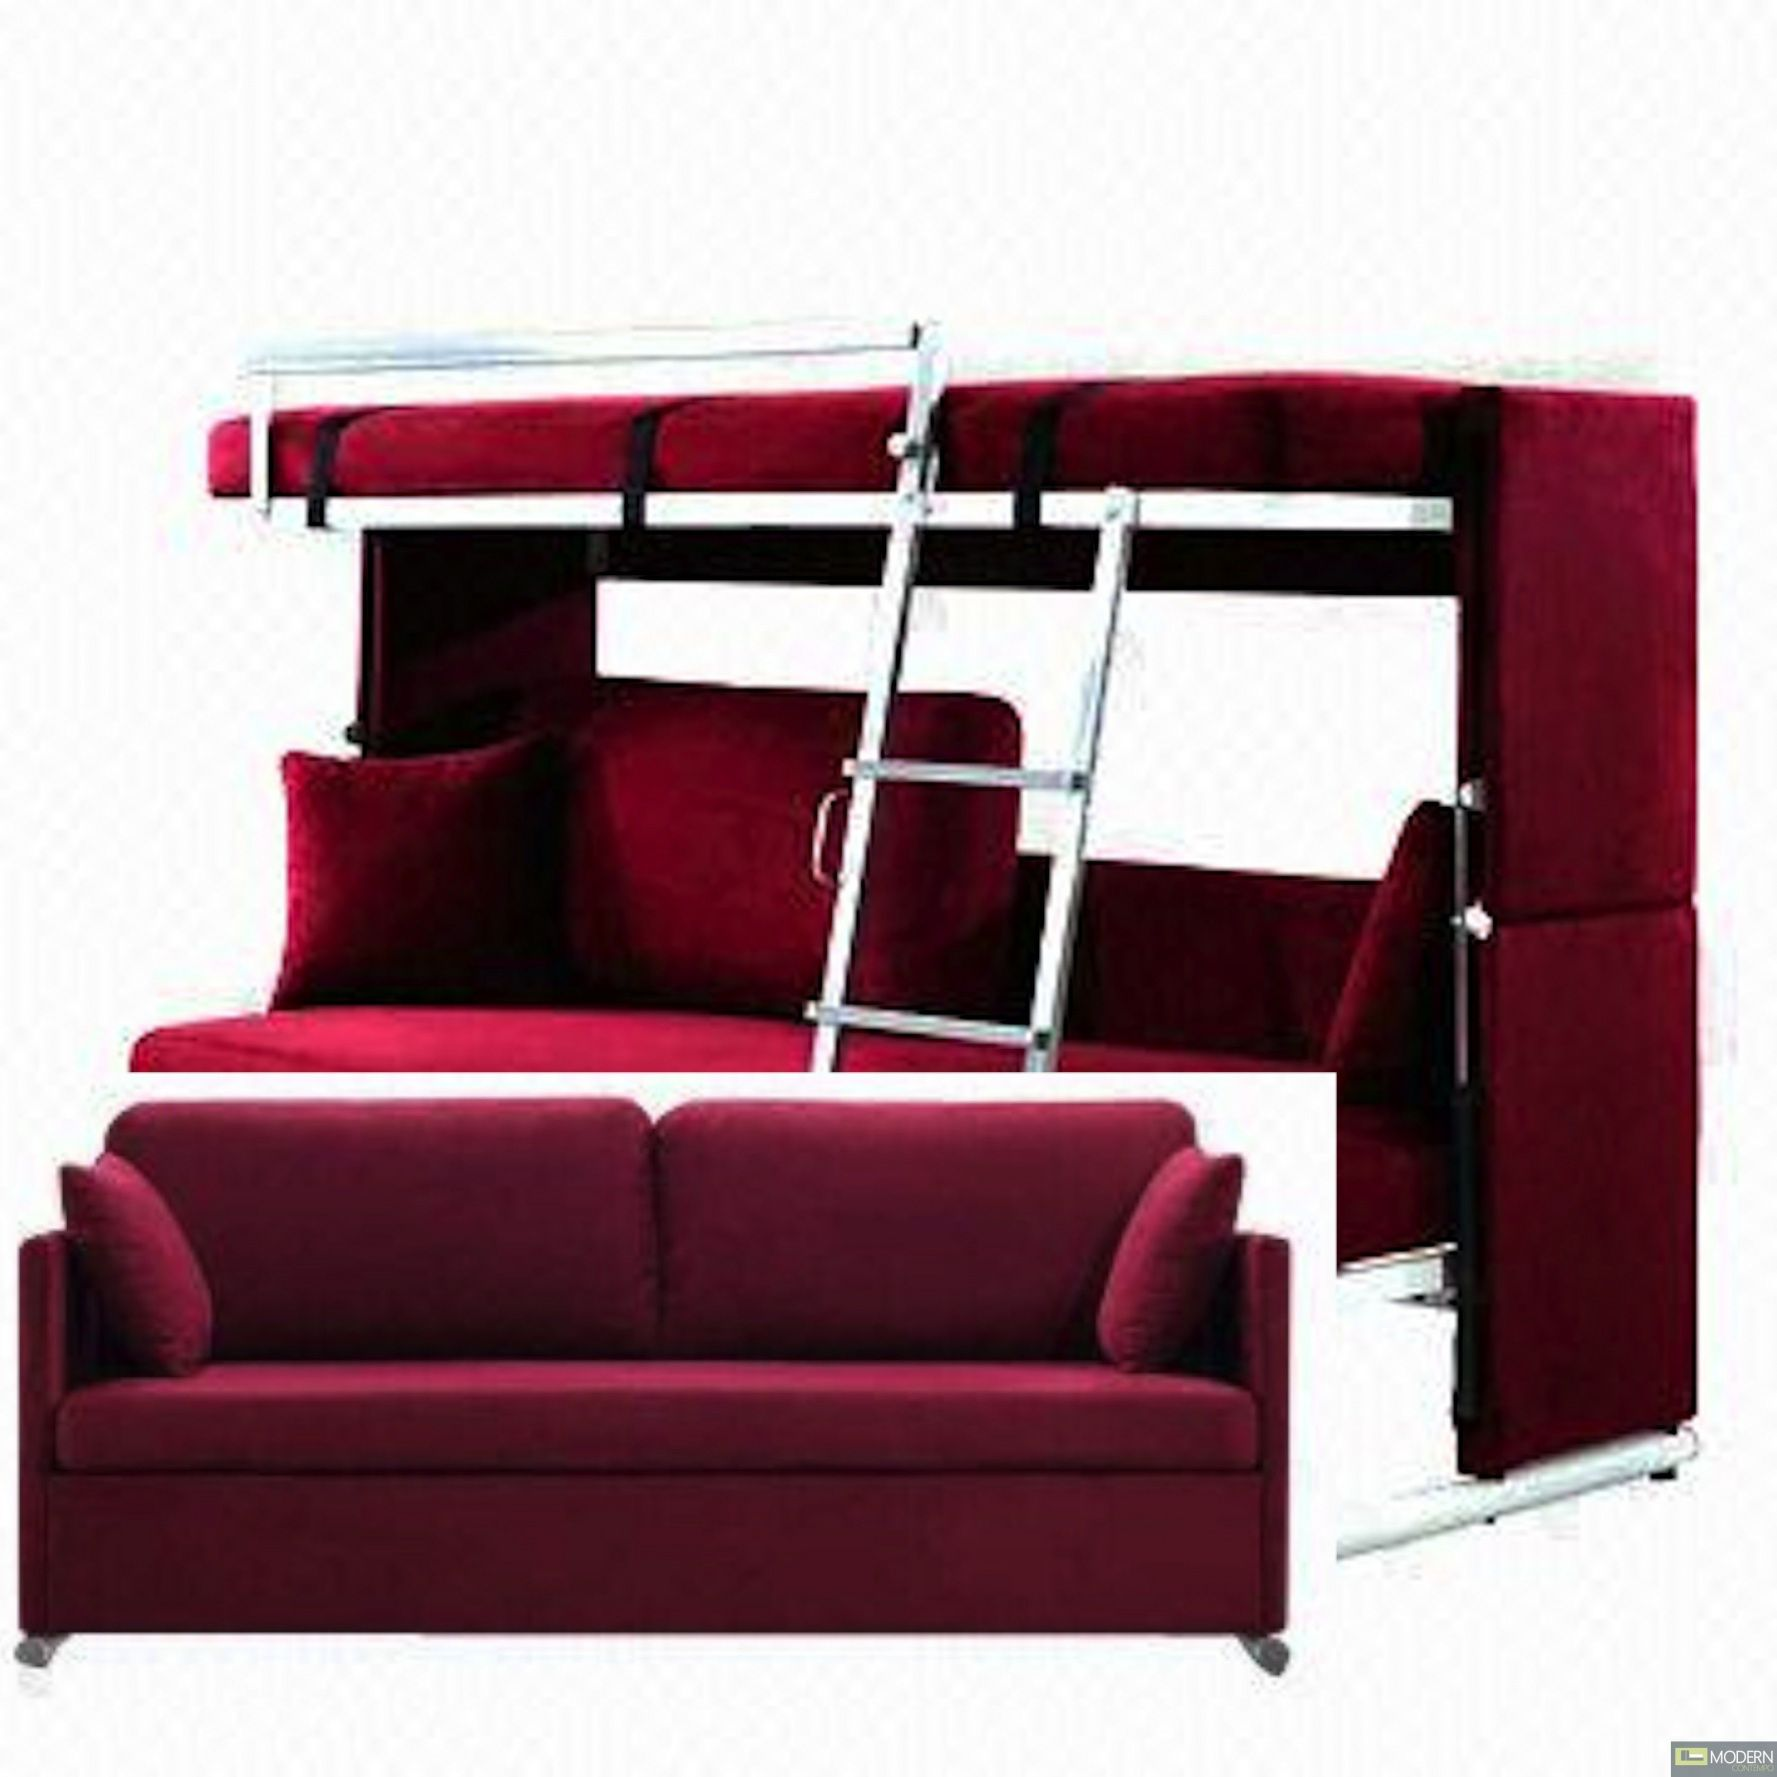 55 Couch That Converts Into Bunk Beds Master Bedroom Interior